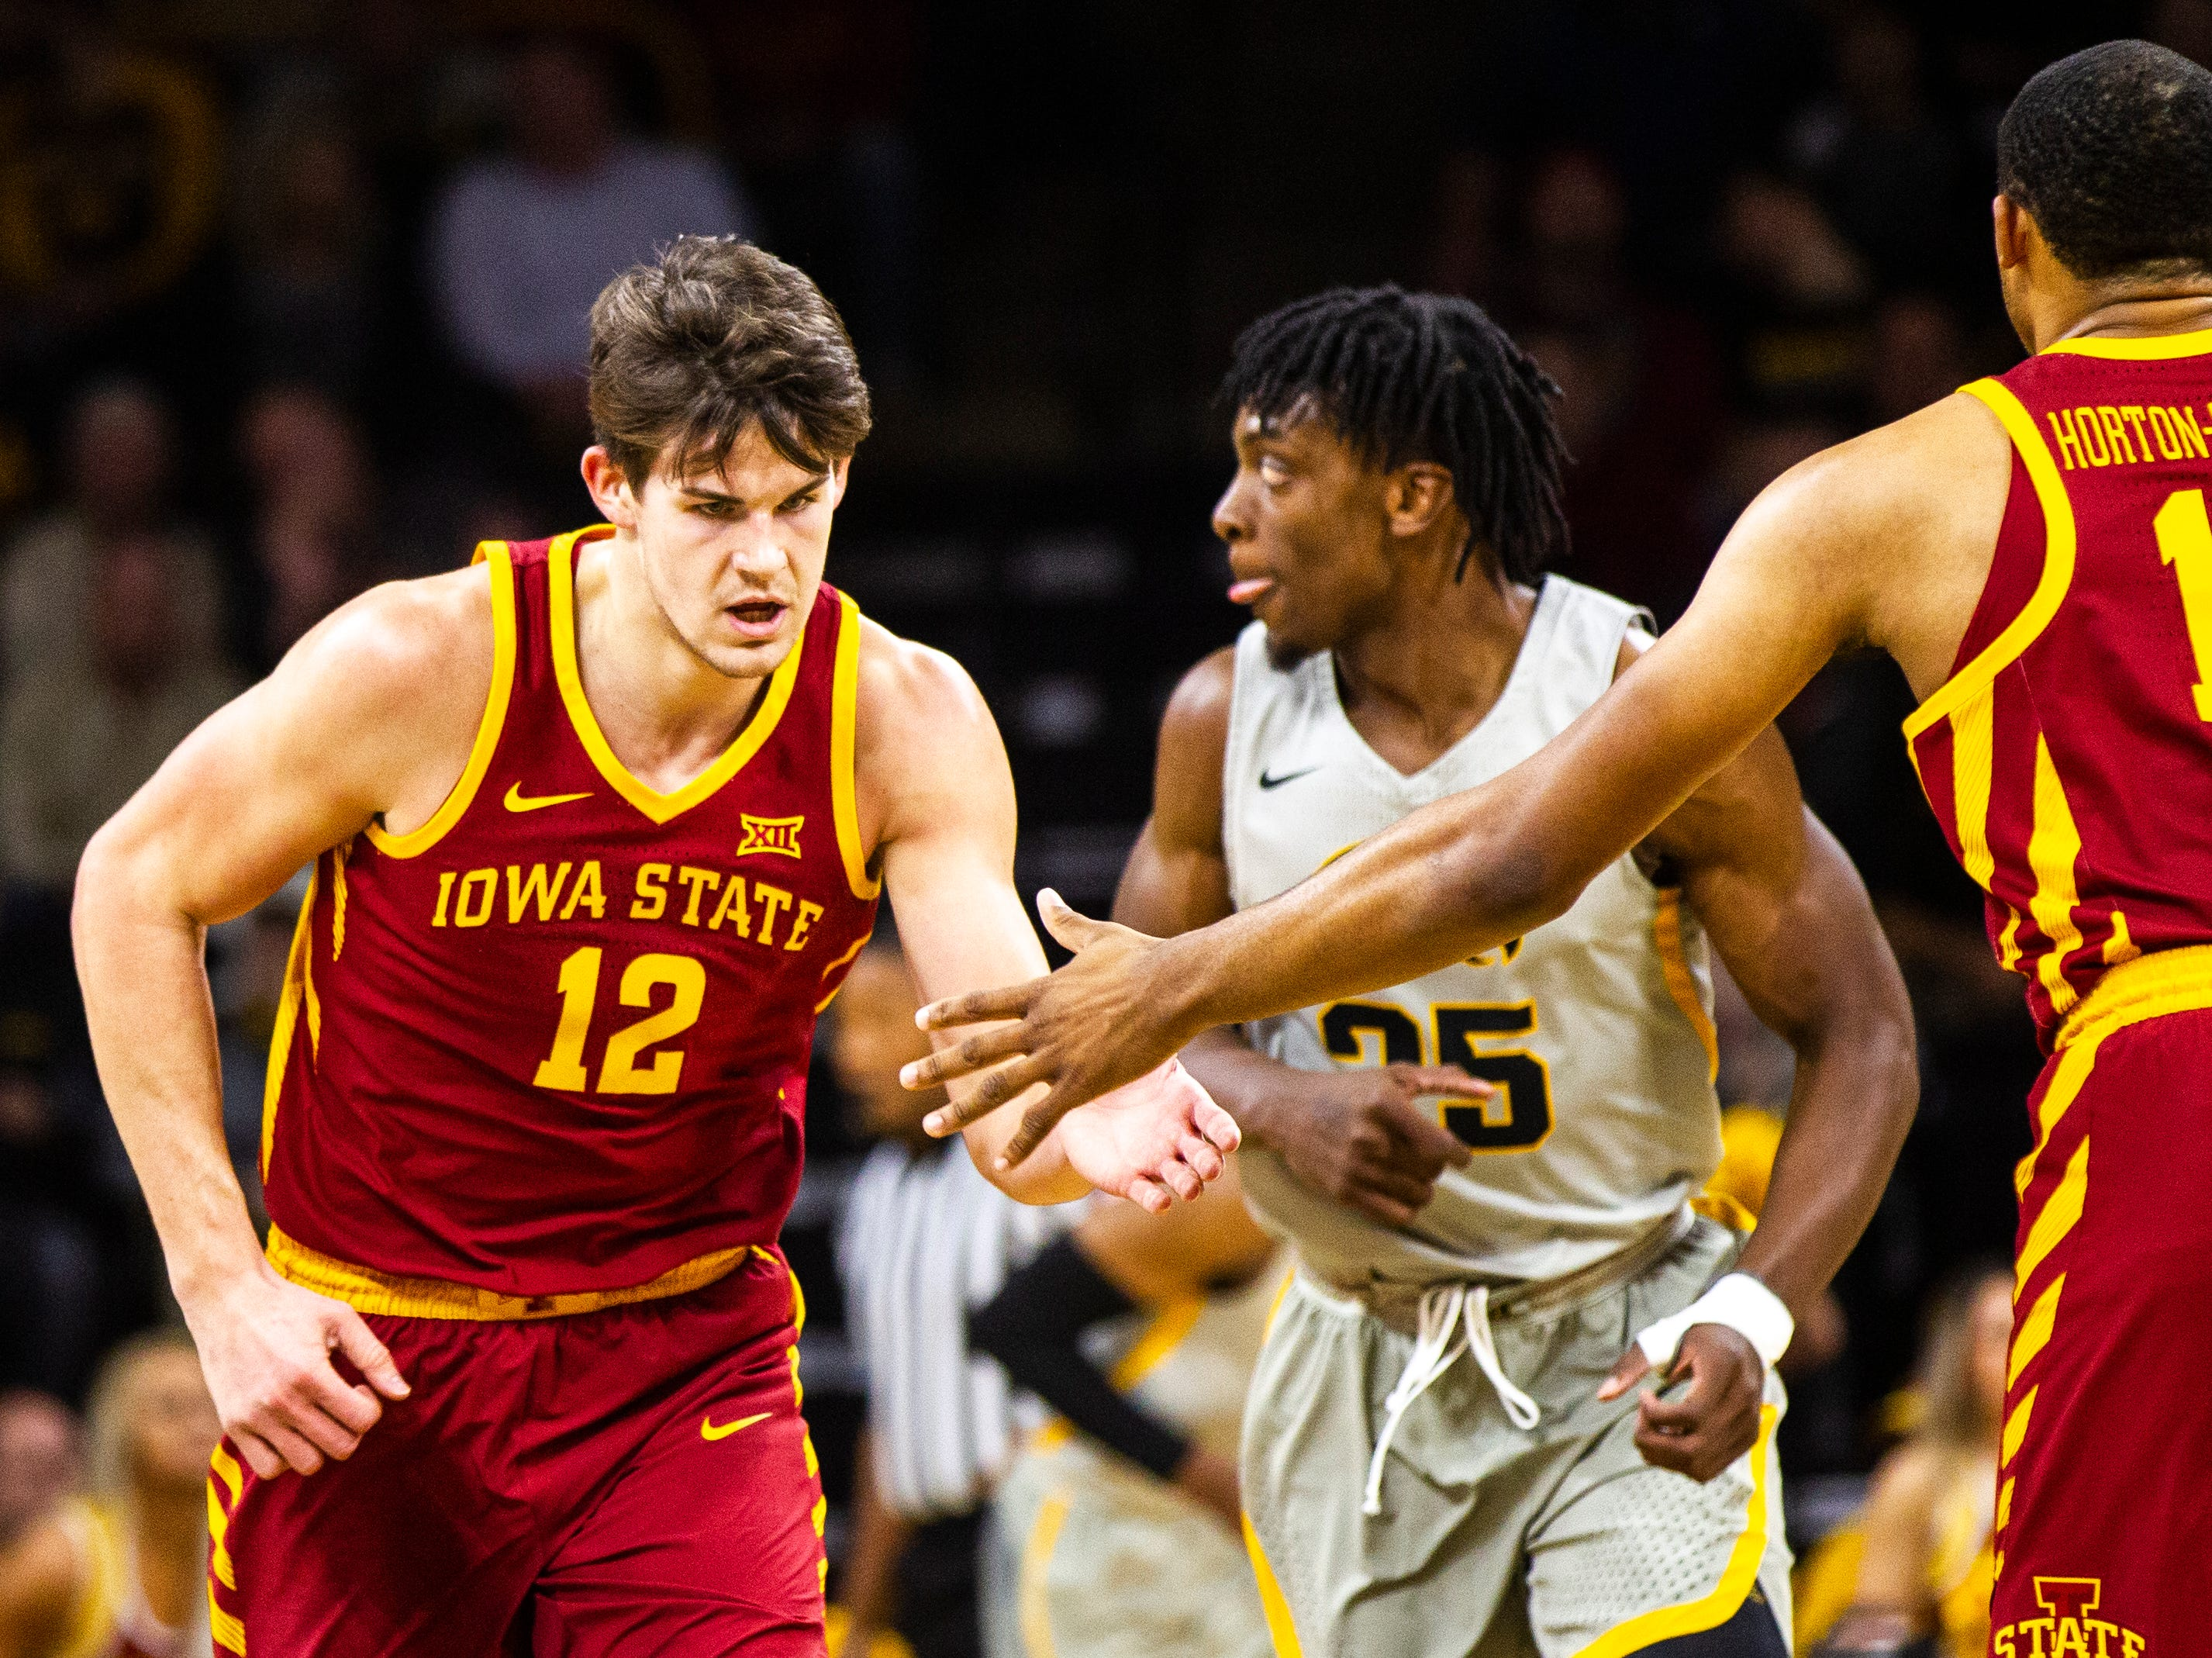 Iowa State forward Michael Jacobson (12) high-fives Iowa State guard Talen Horton-Tucker (11) during a NCAA Cy-Hawk series men's basketball game on Thursday, Dec. 6, 2018, at Carver-Hawkeye Arena in Iowa City.